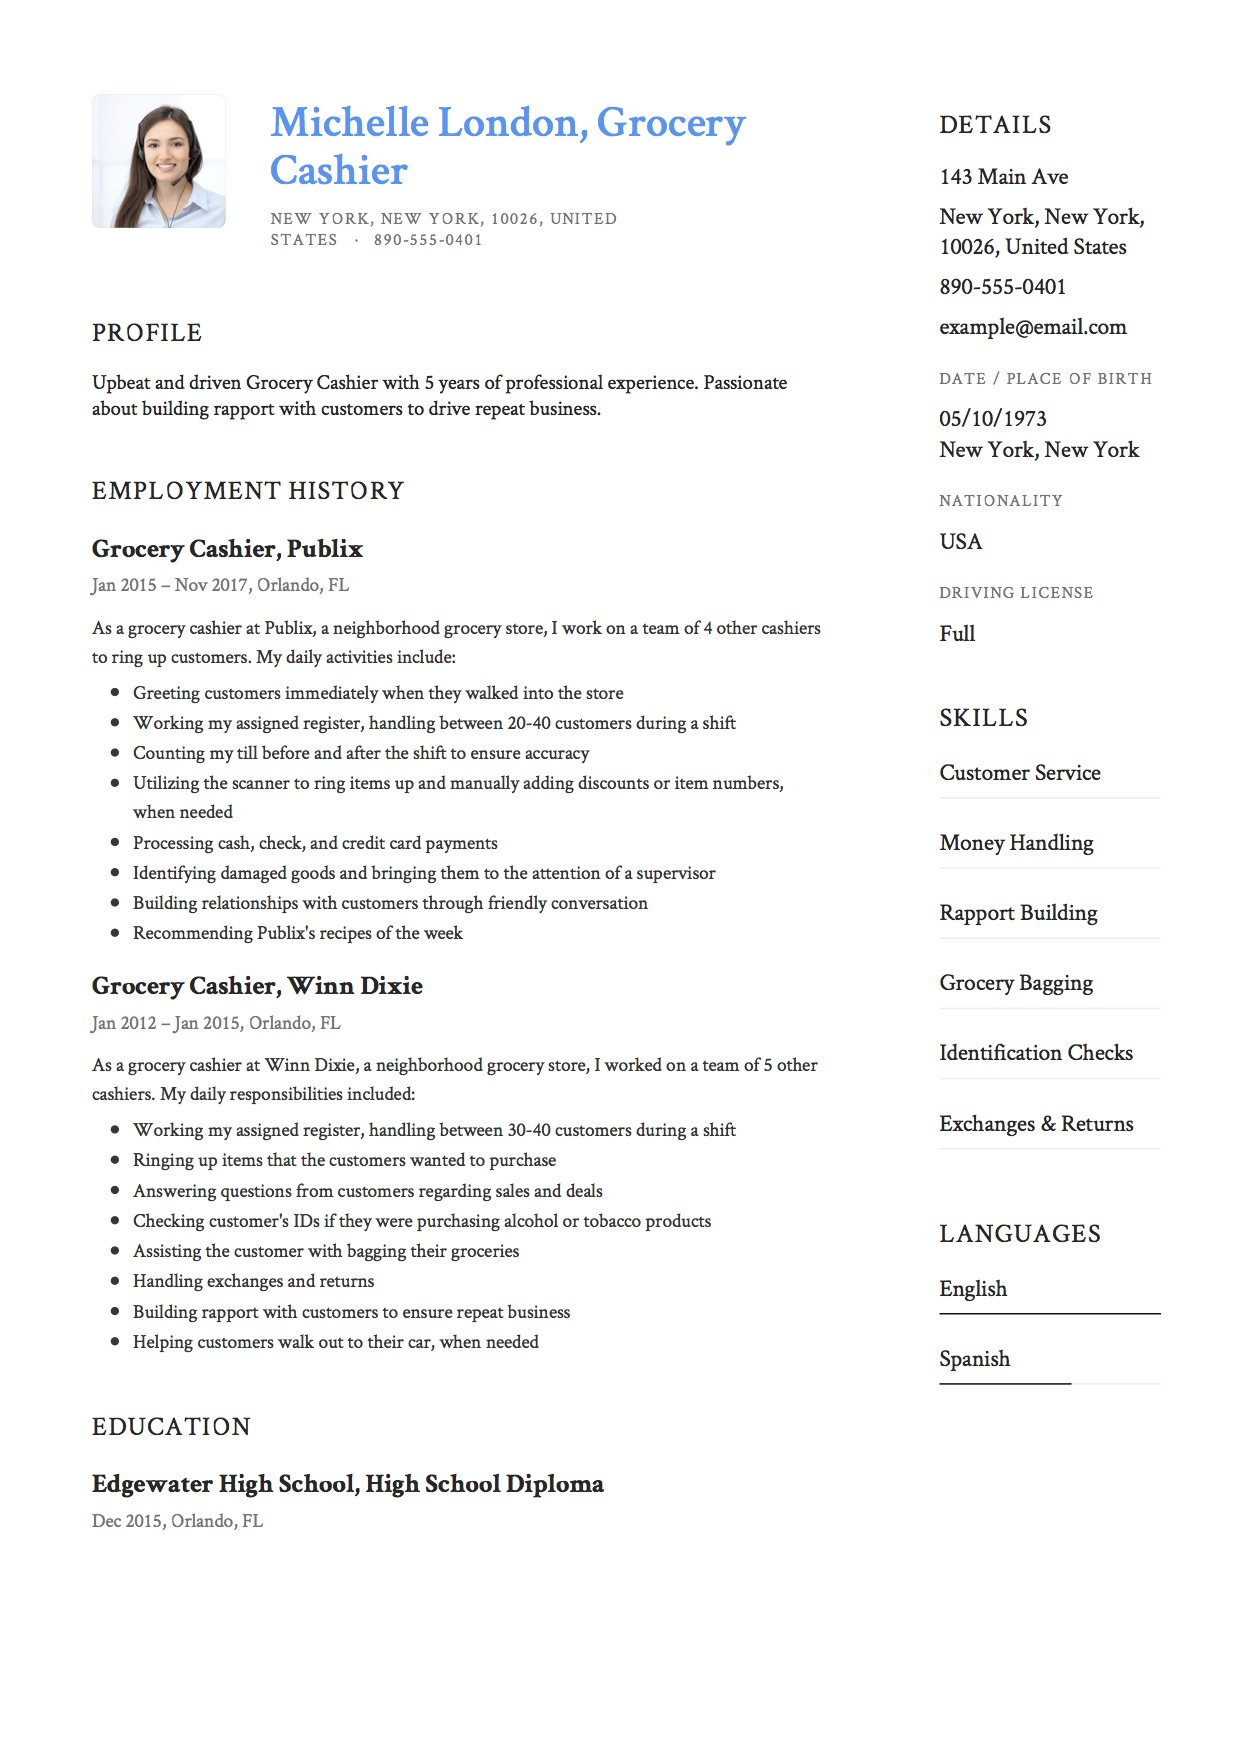 Cashier Resume ] | Cashier Resume, Cashier Resume Description ...